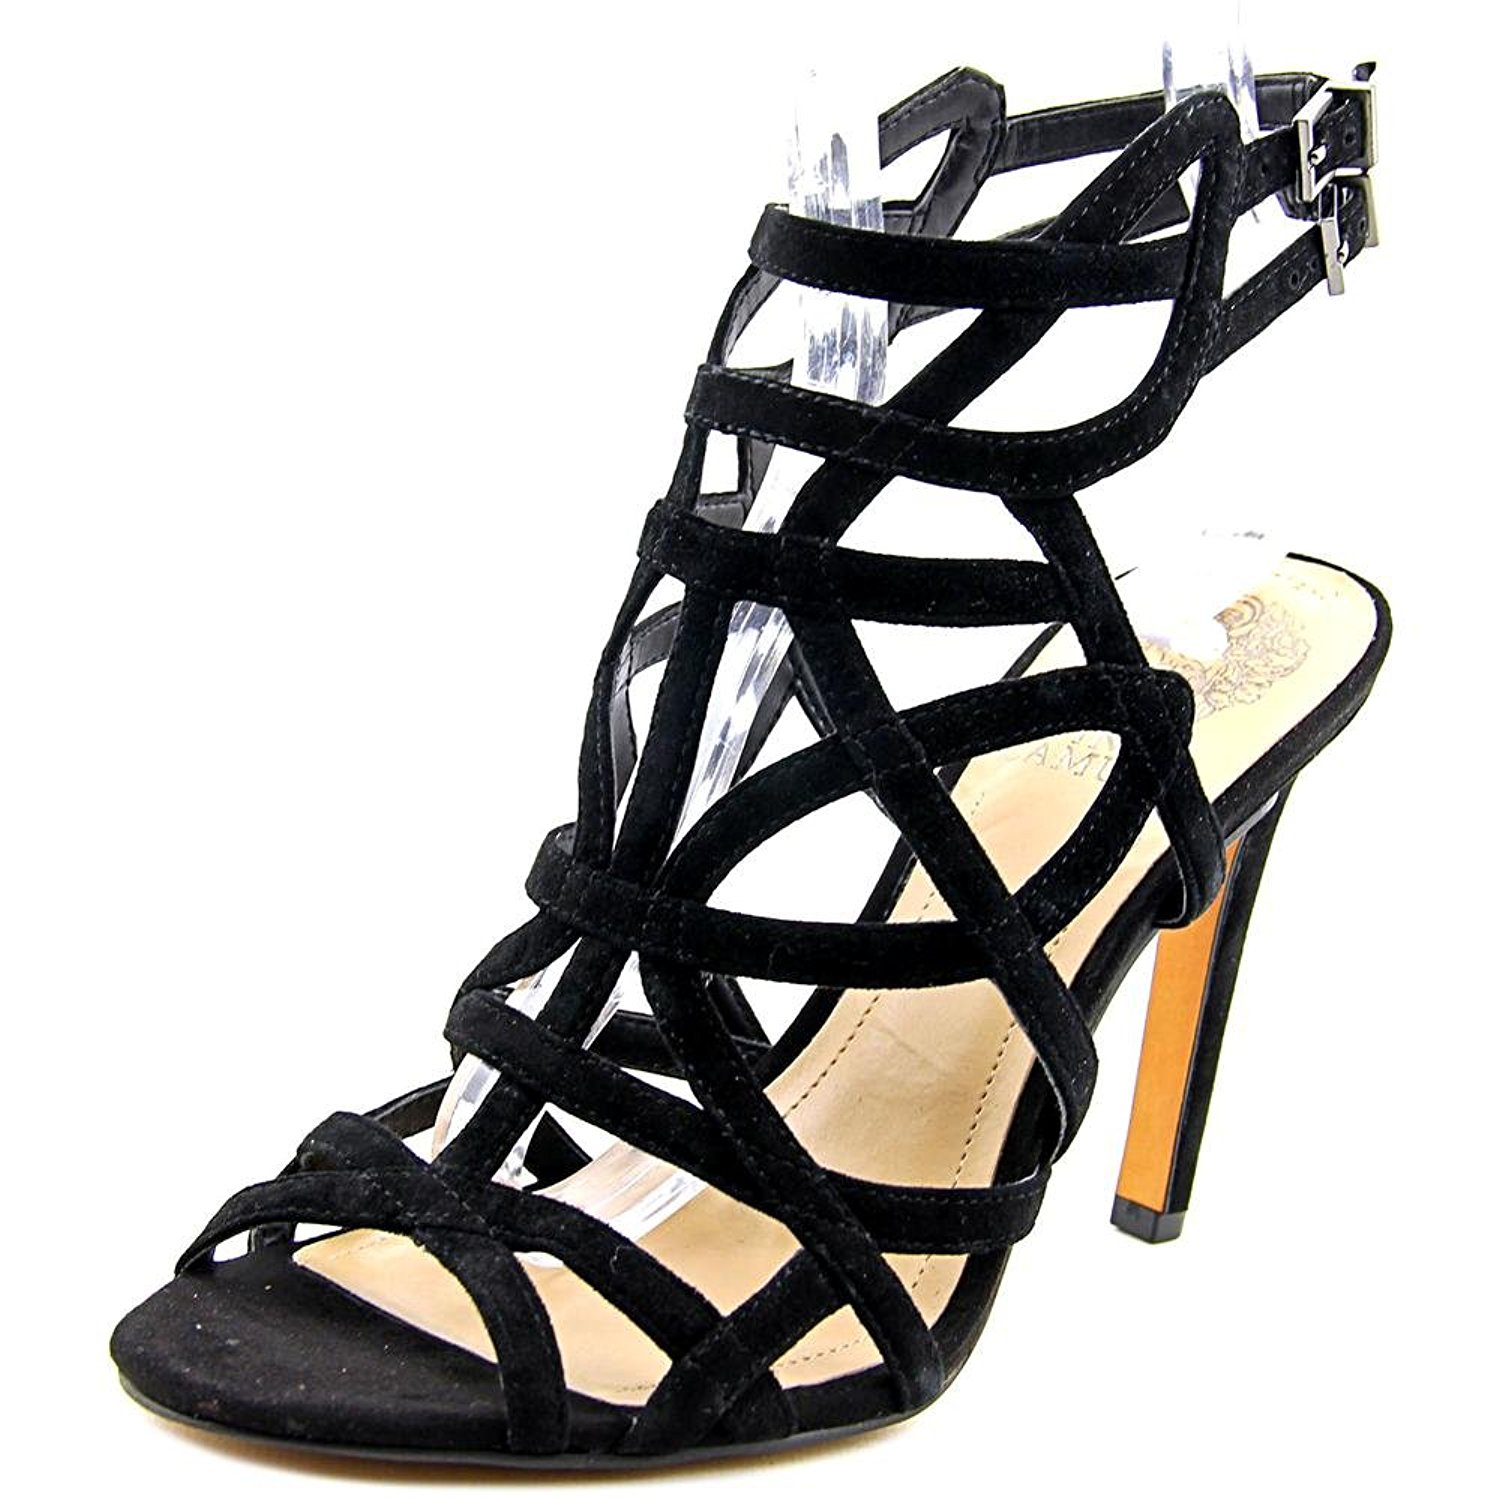 Vince Camuto Womens kenna Open Toe Casual Ankle Strap Sandals Black Size 65